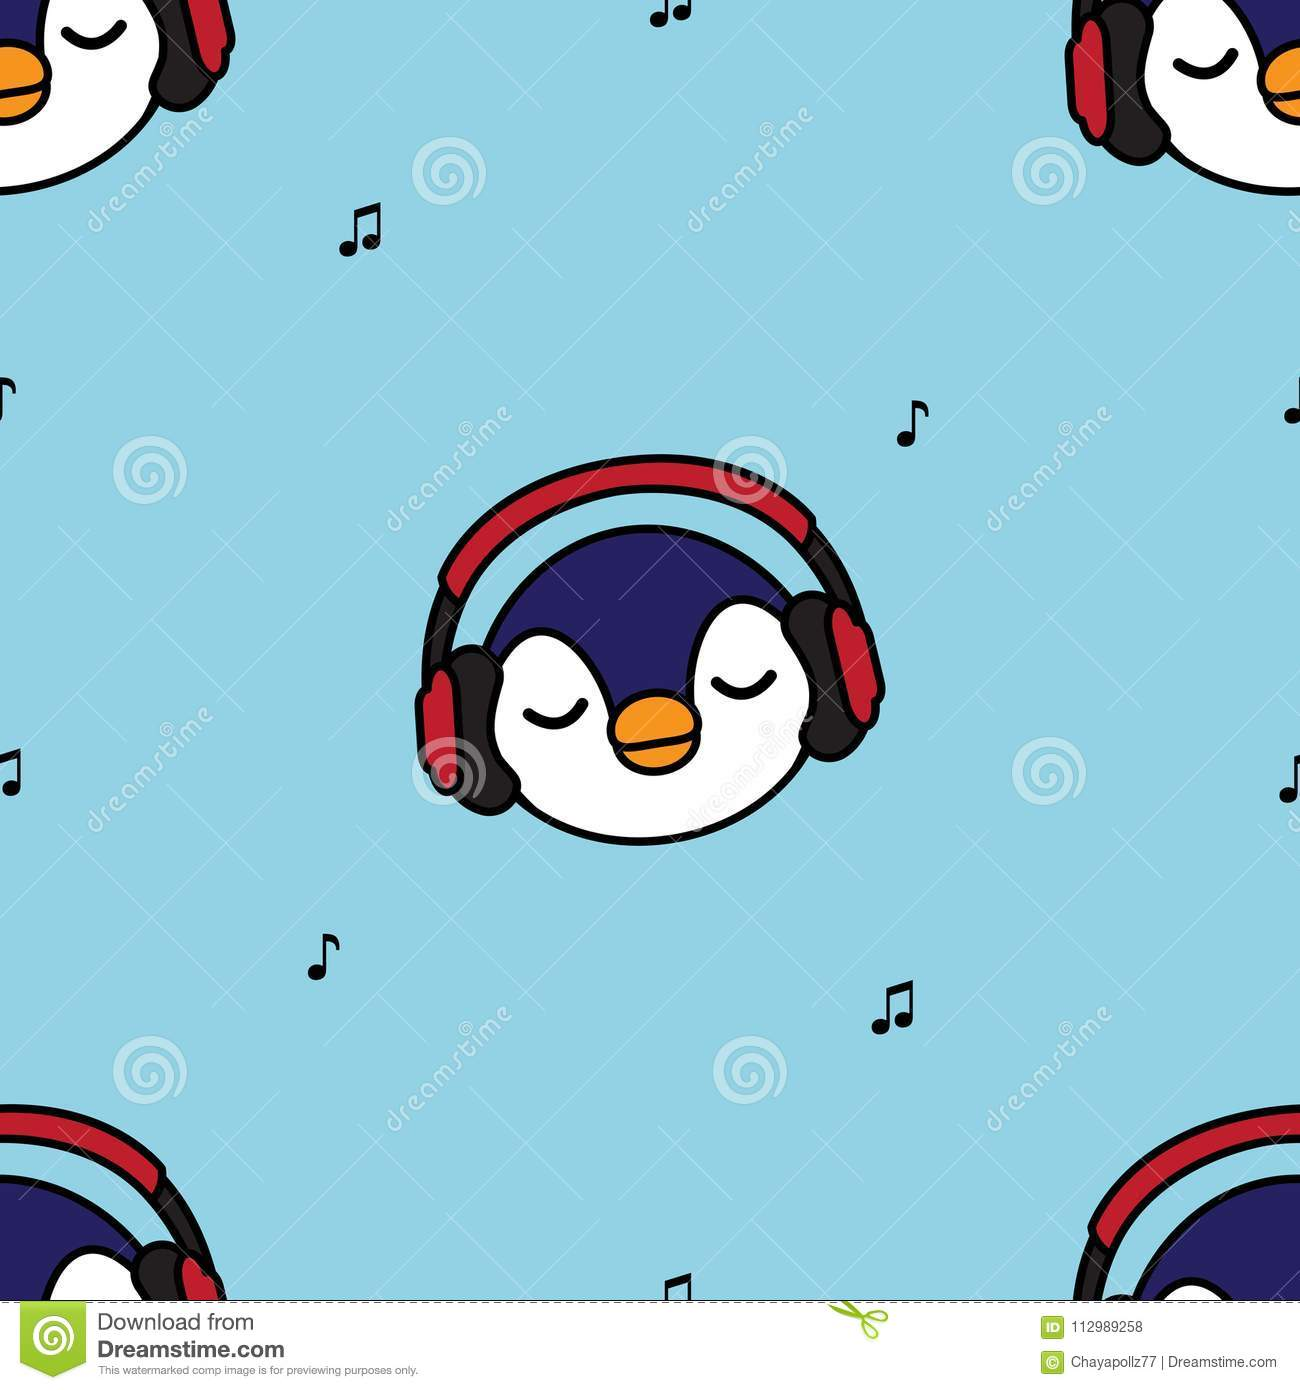 Seamless pattern penguin with red headphones